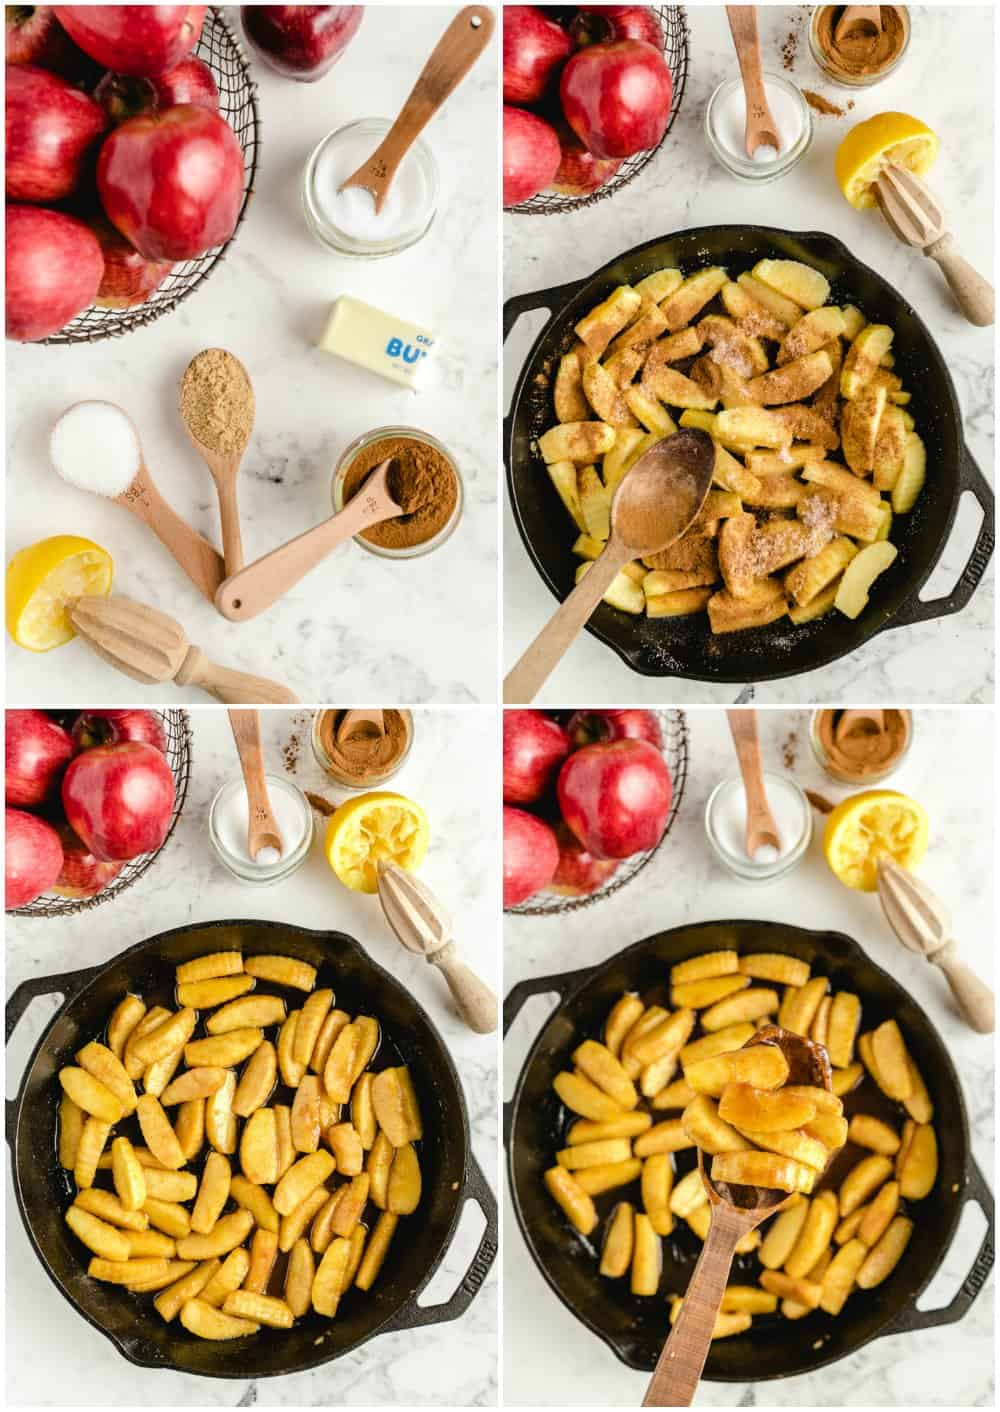 step by step photos of how to make fried apples